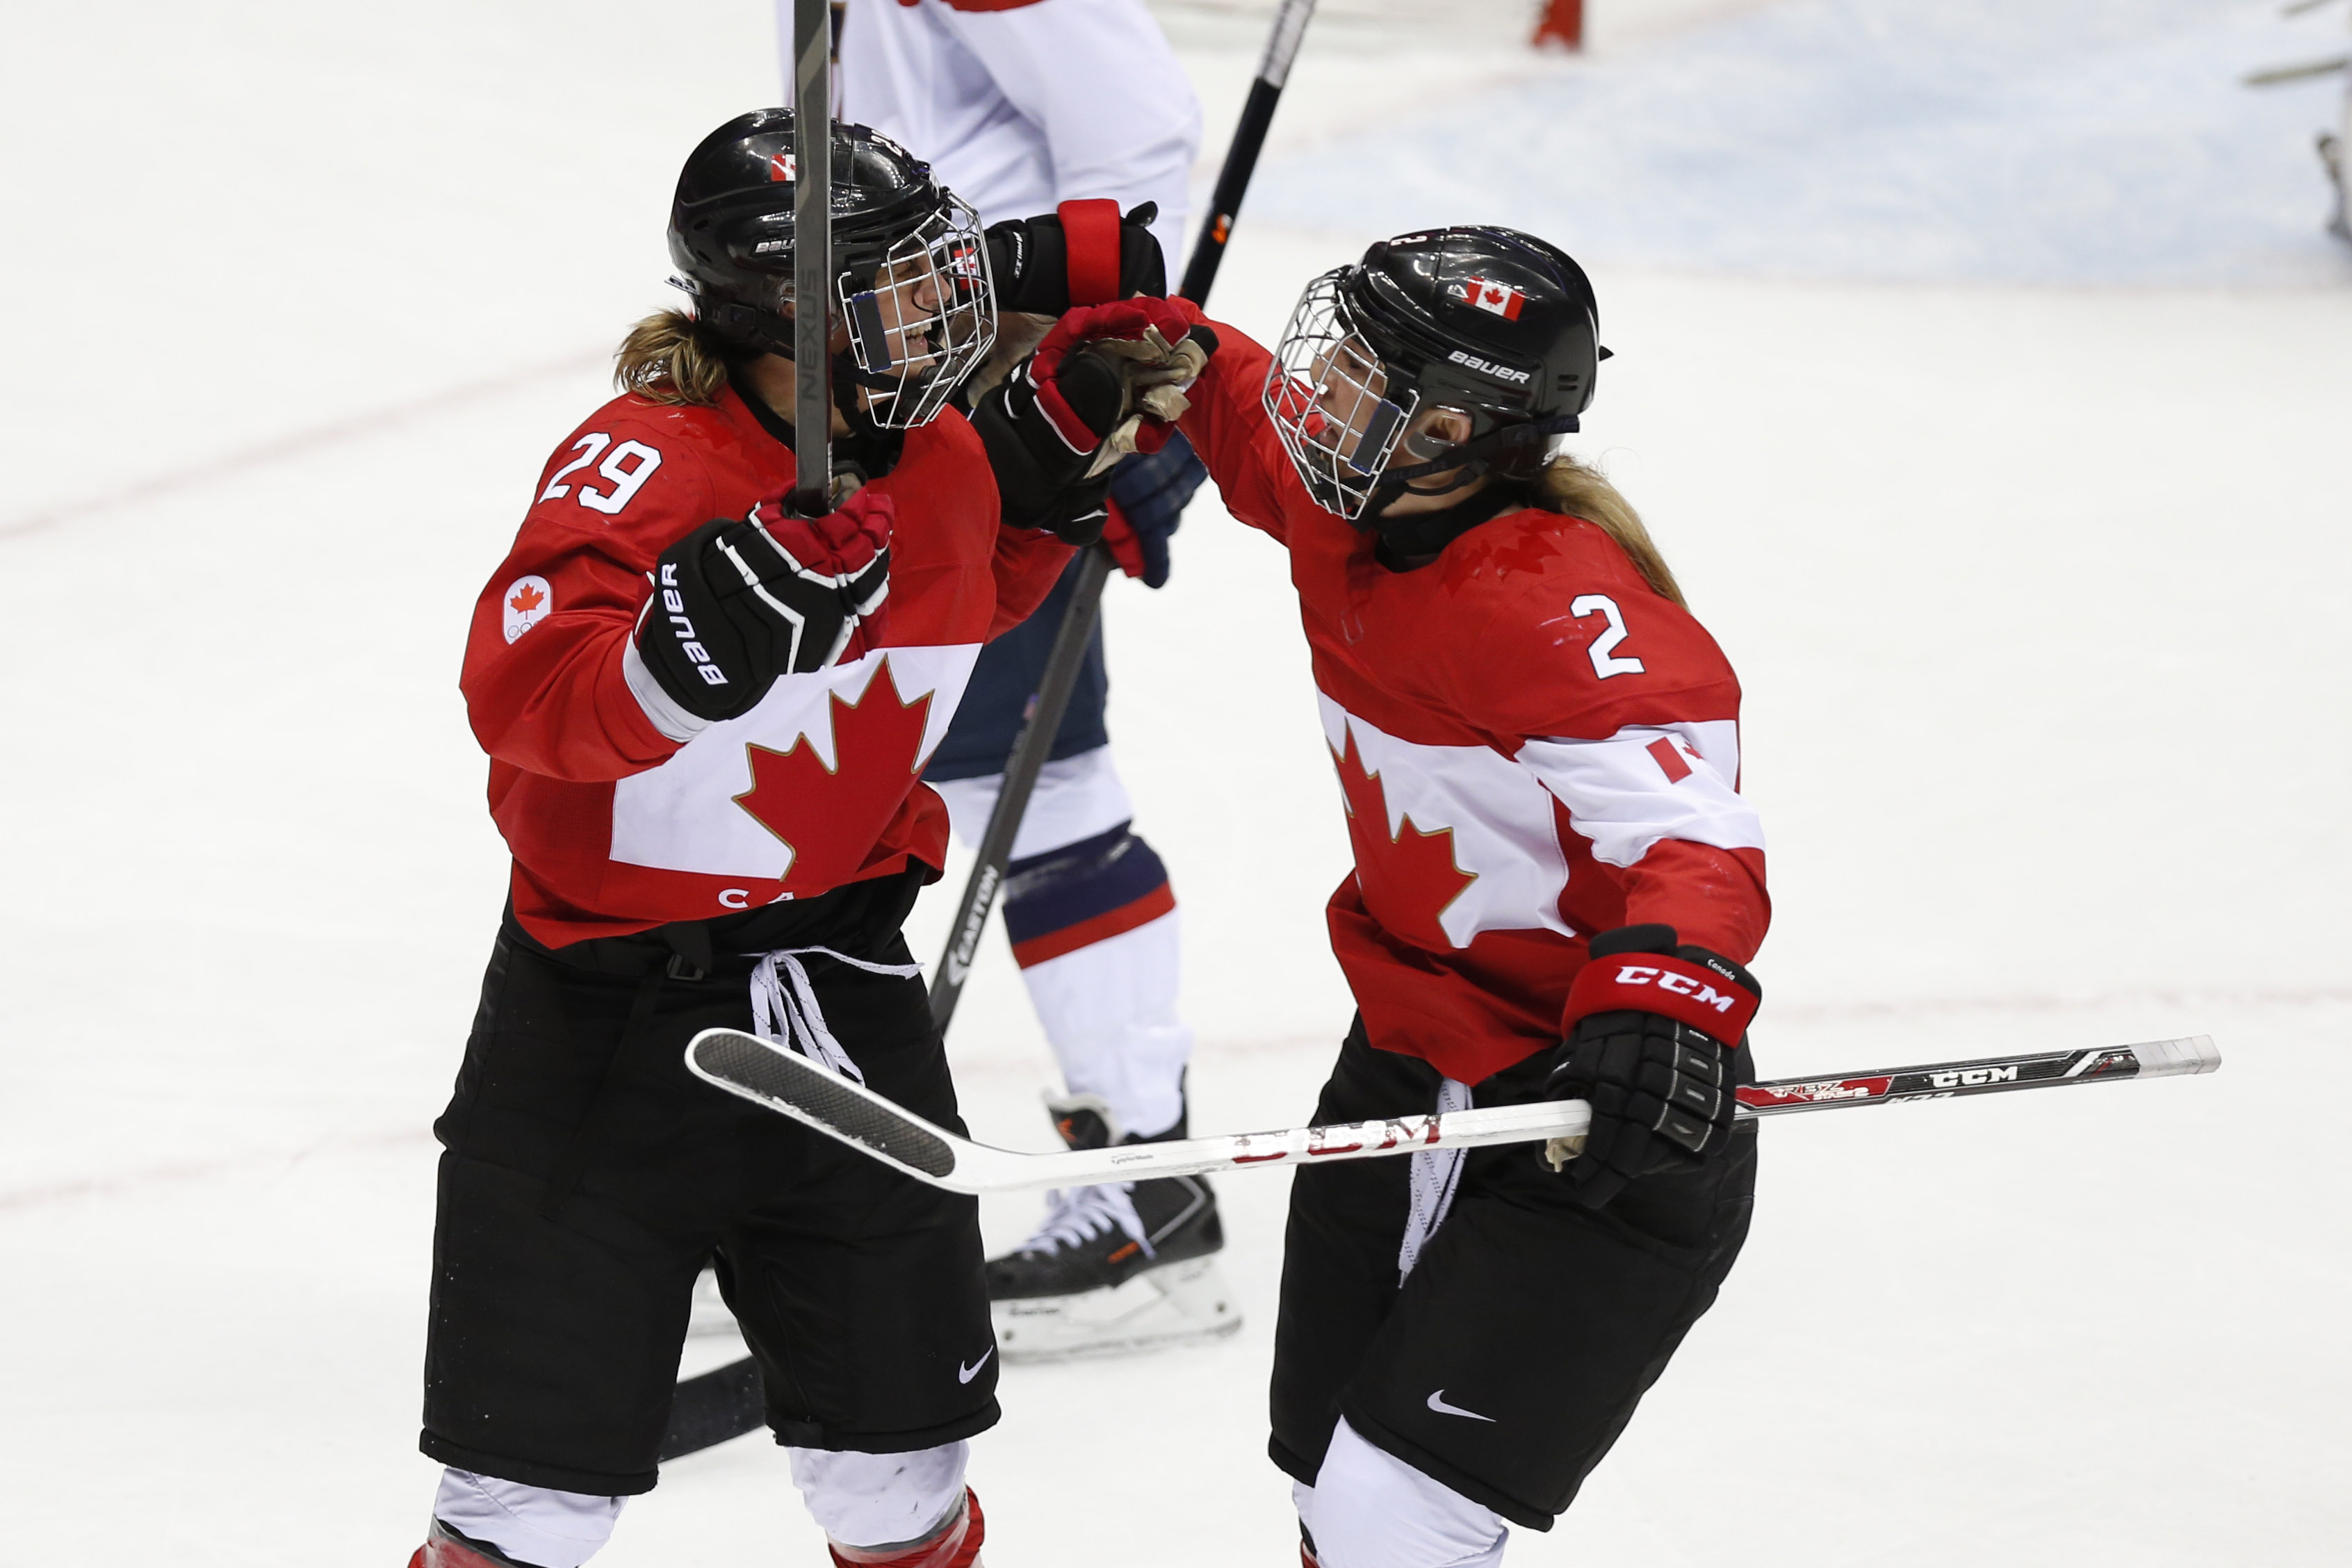 Marie-Philip Poulin, left, and Meghan Agosta headline a solid roster for Team Canada, which will participate in the 4 Nations Cup later this week.